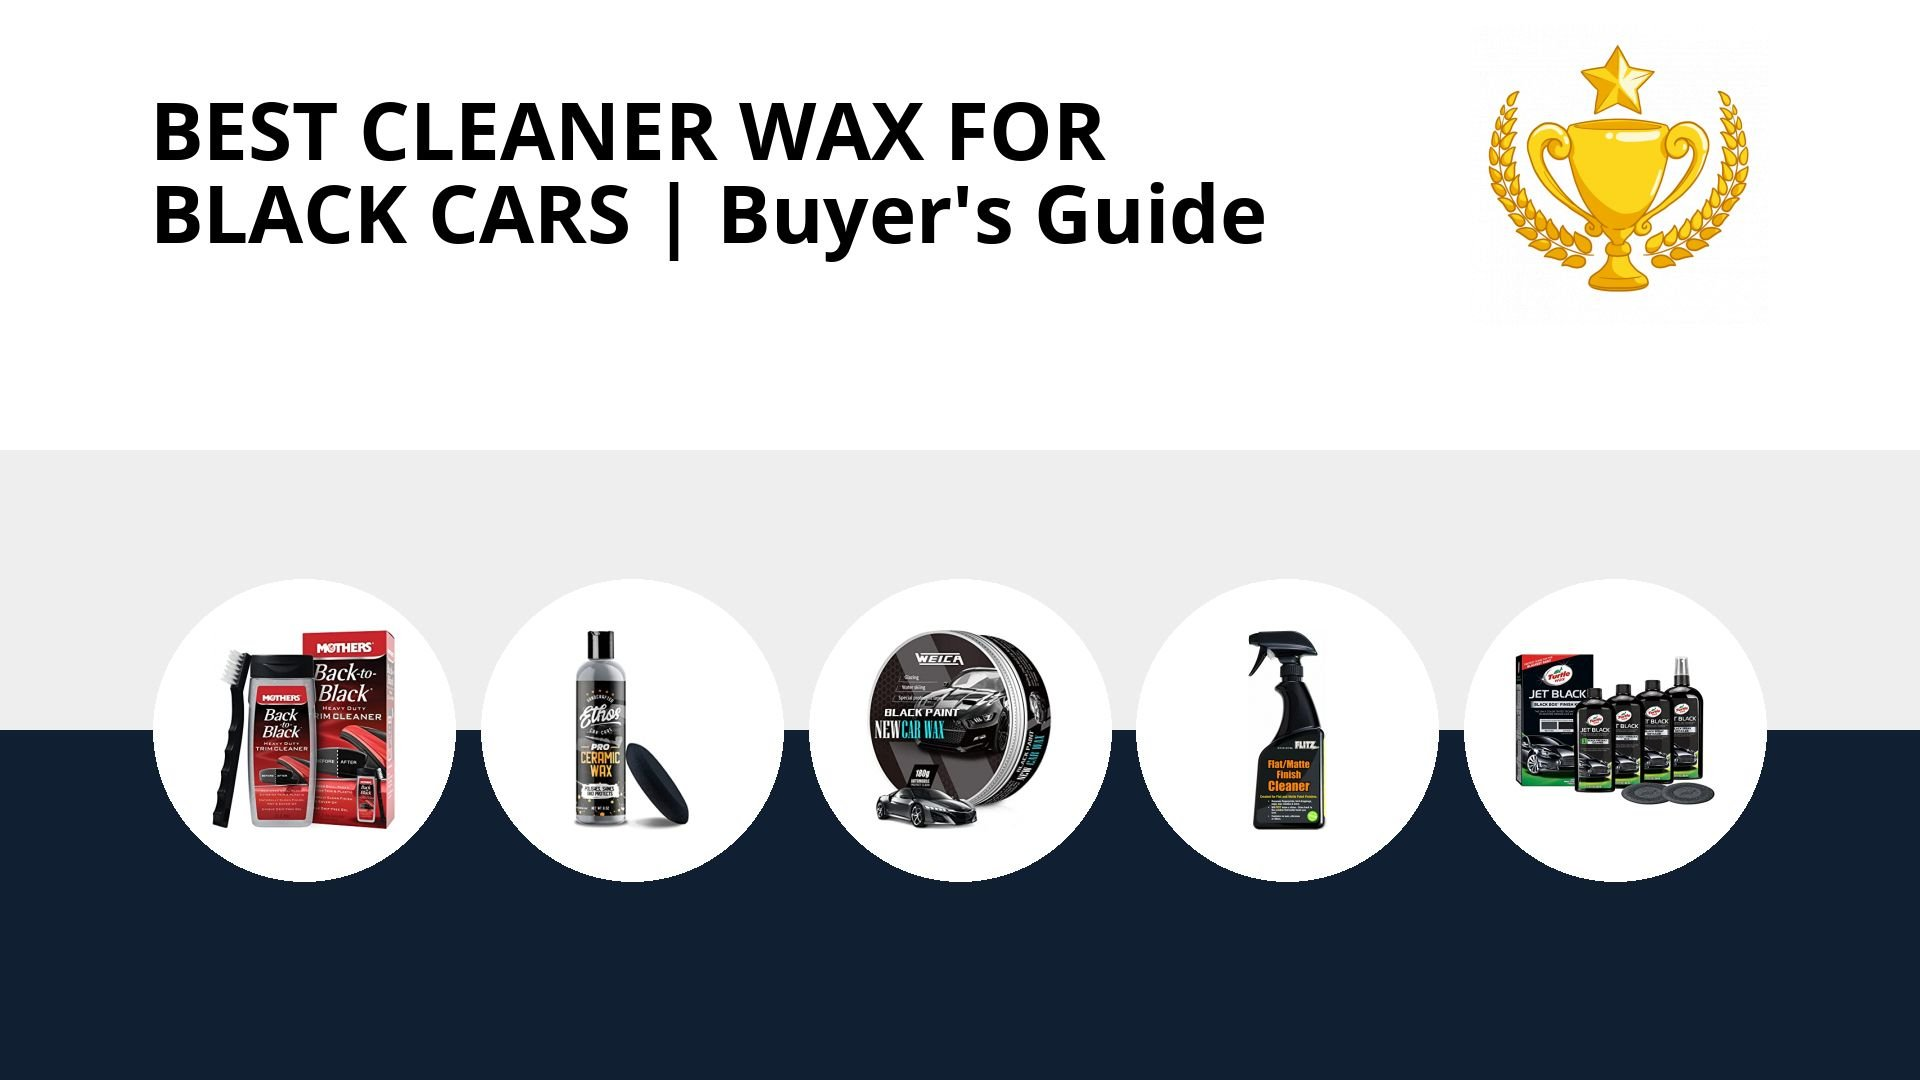 Best Cleaner Wax For Black Cars: image